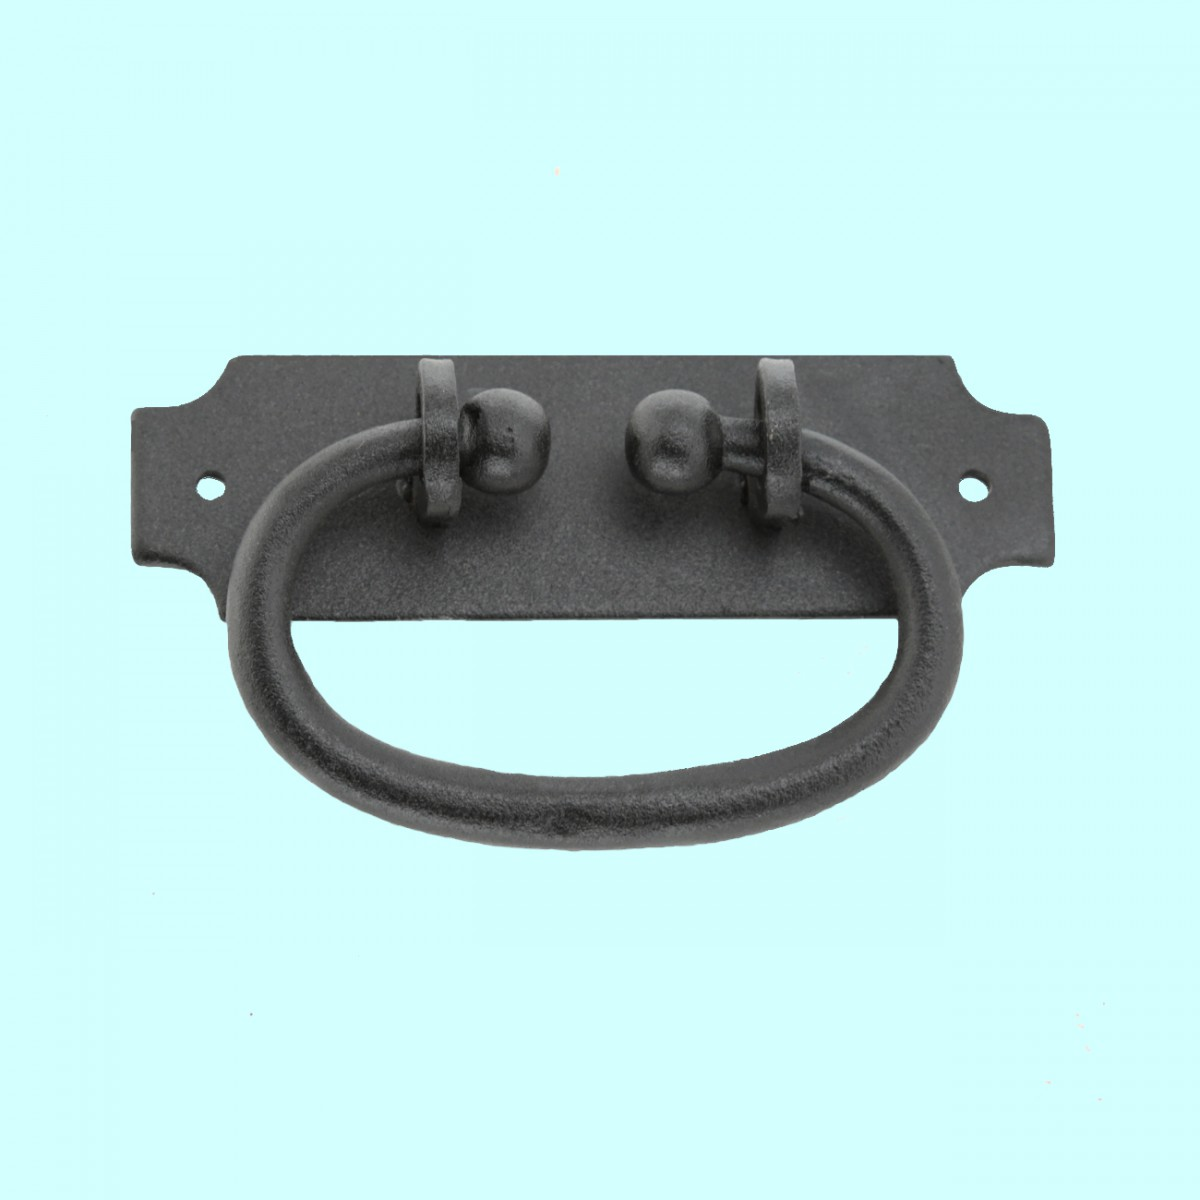 cabinet or drawer pull black wrought iron 5 1 4 x 1 9 16